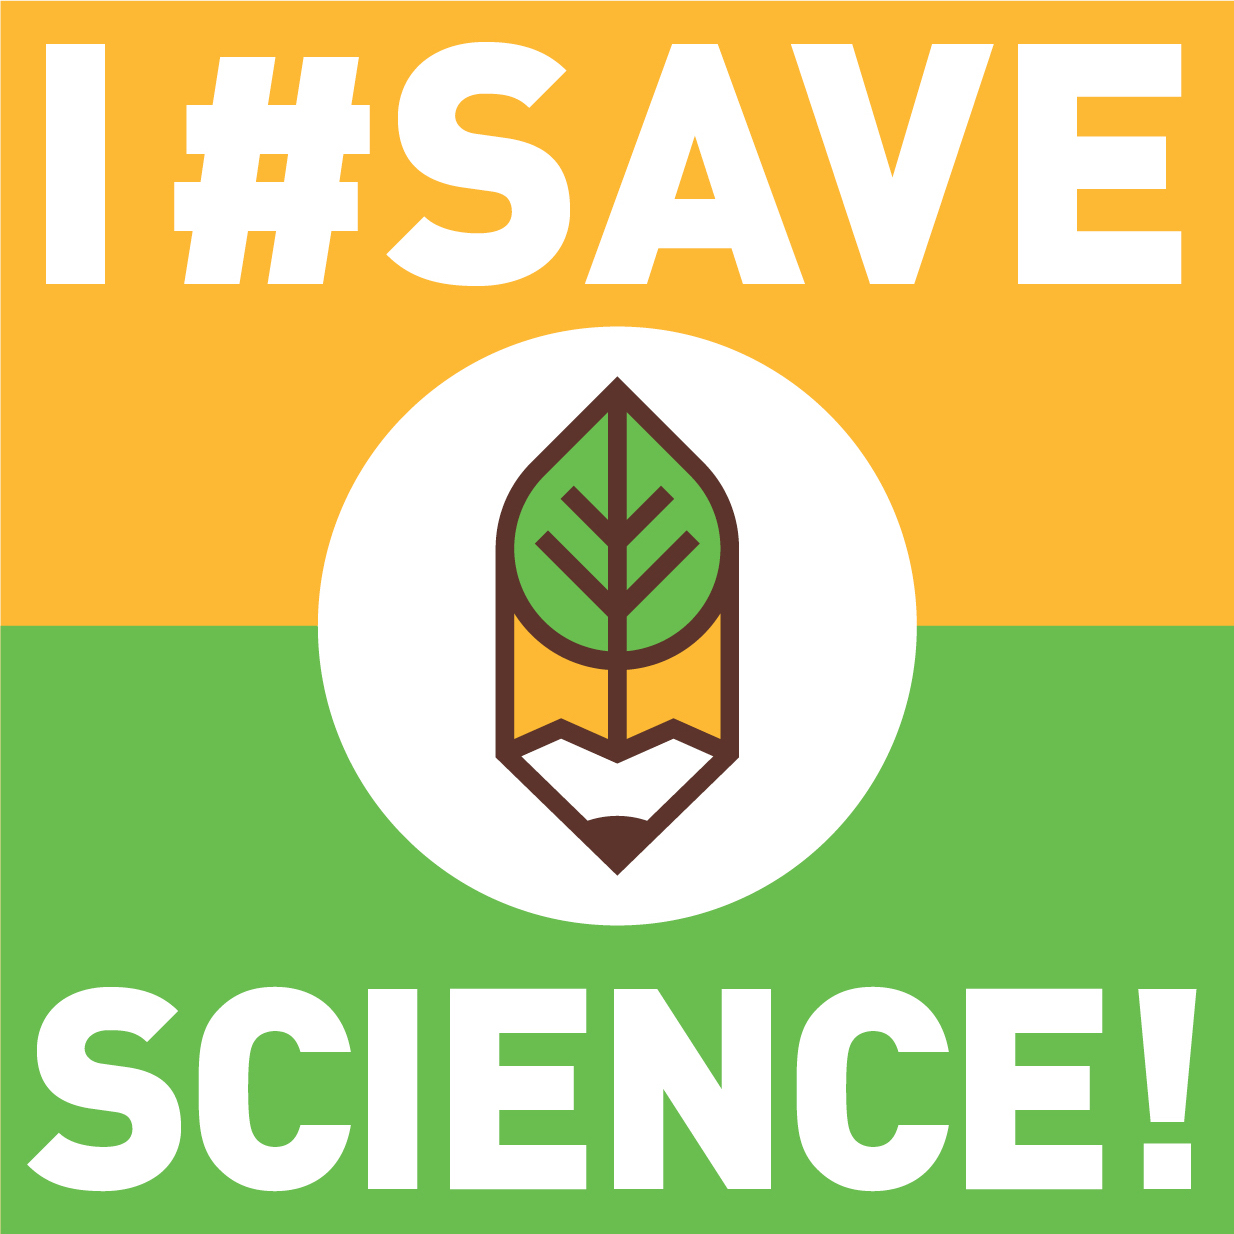 i_savescience_final_square_smaller-file